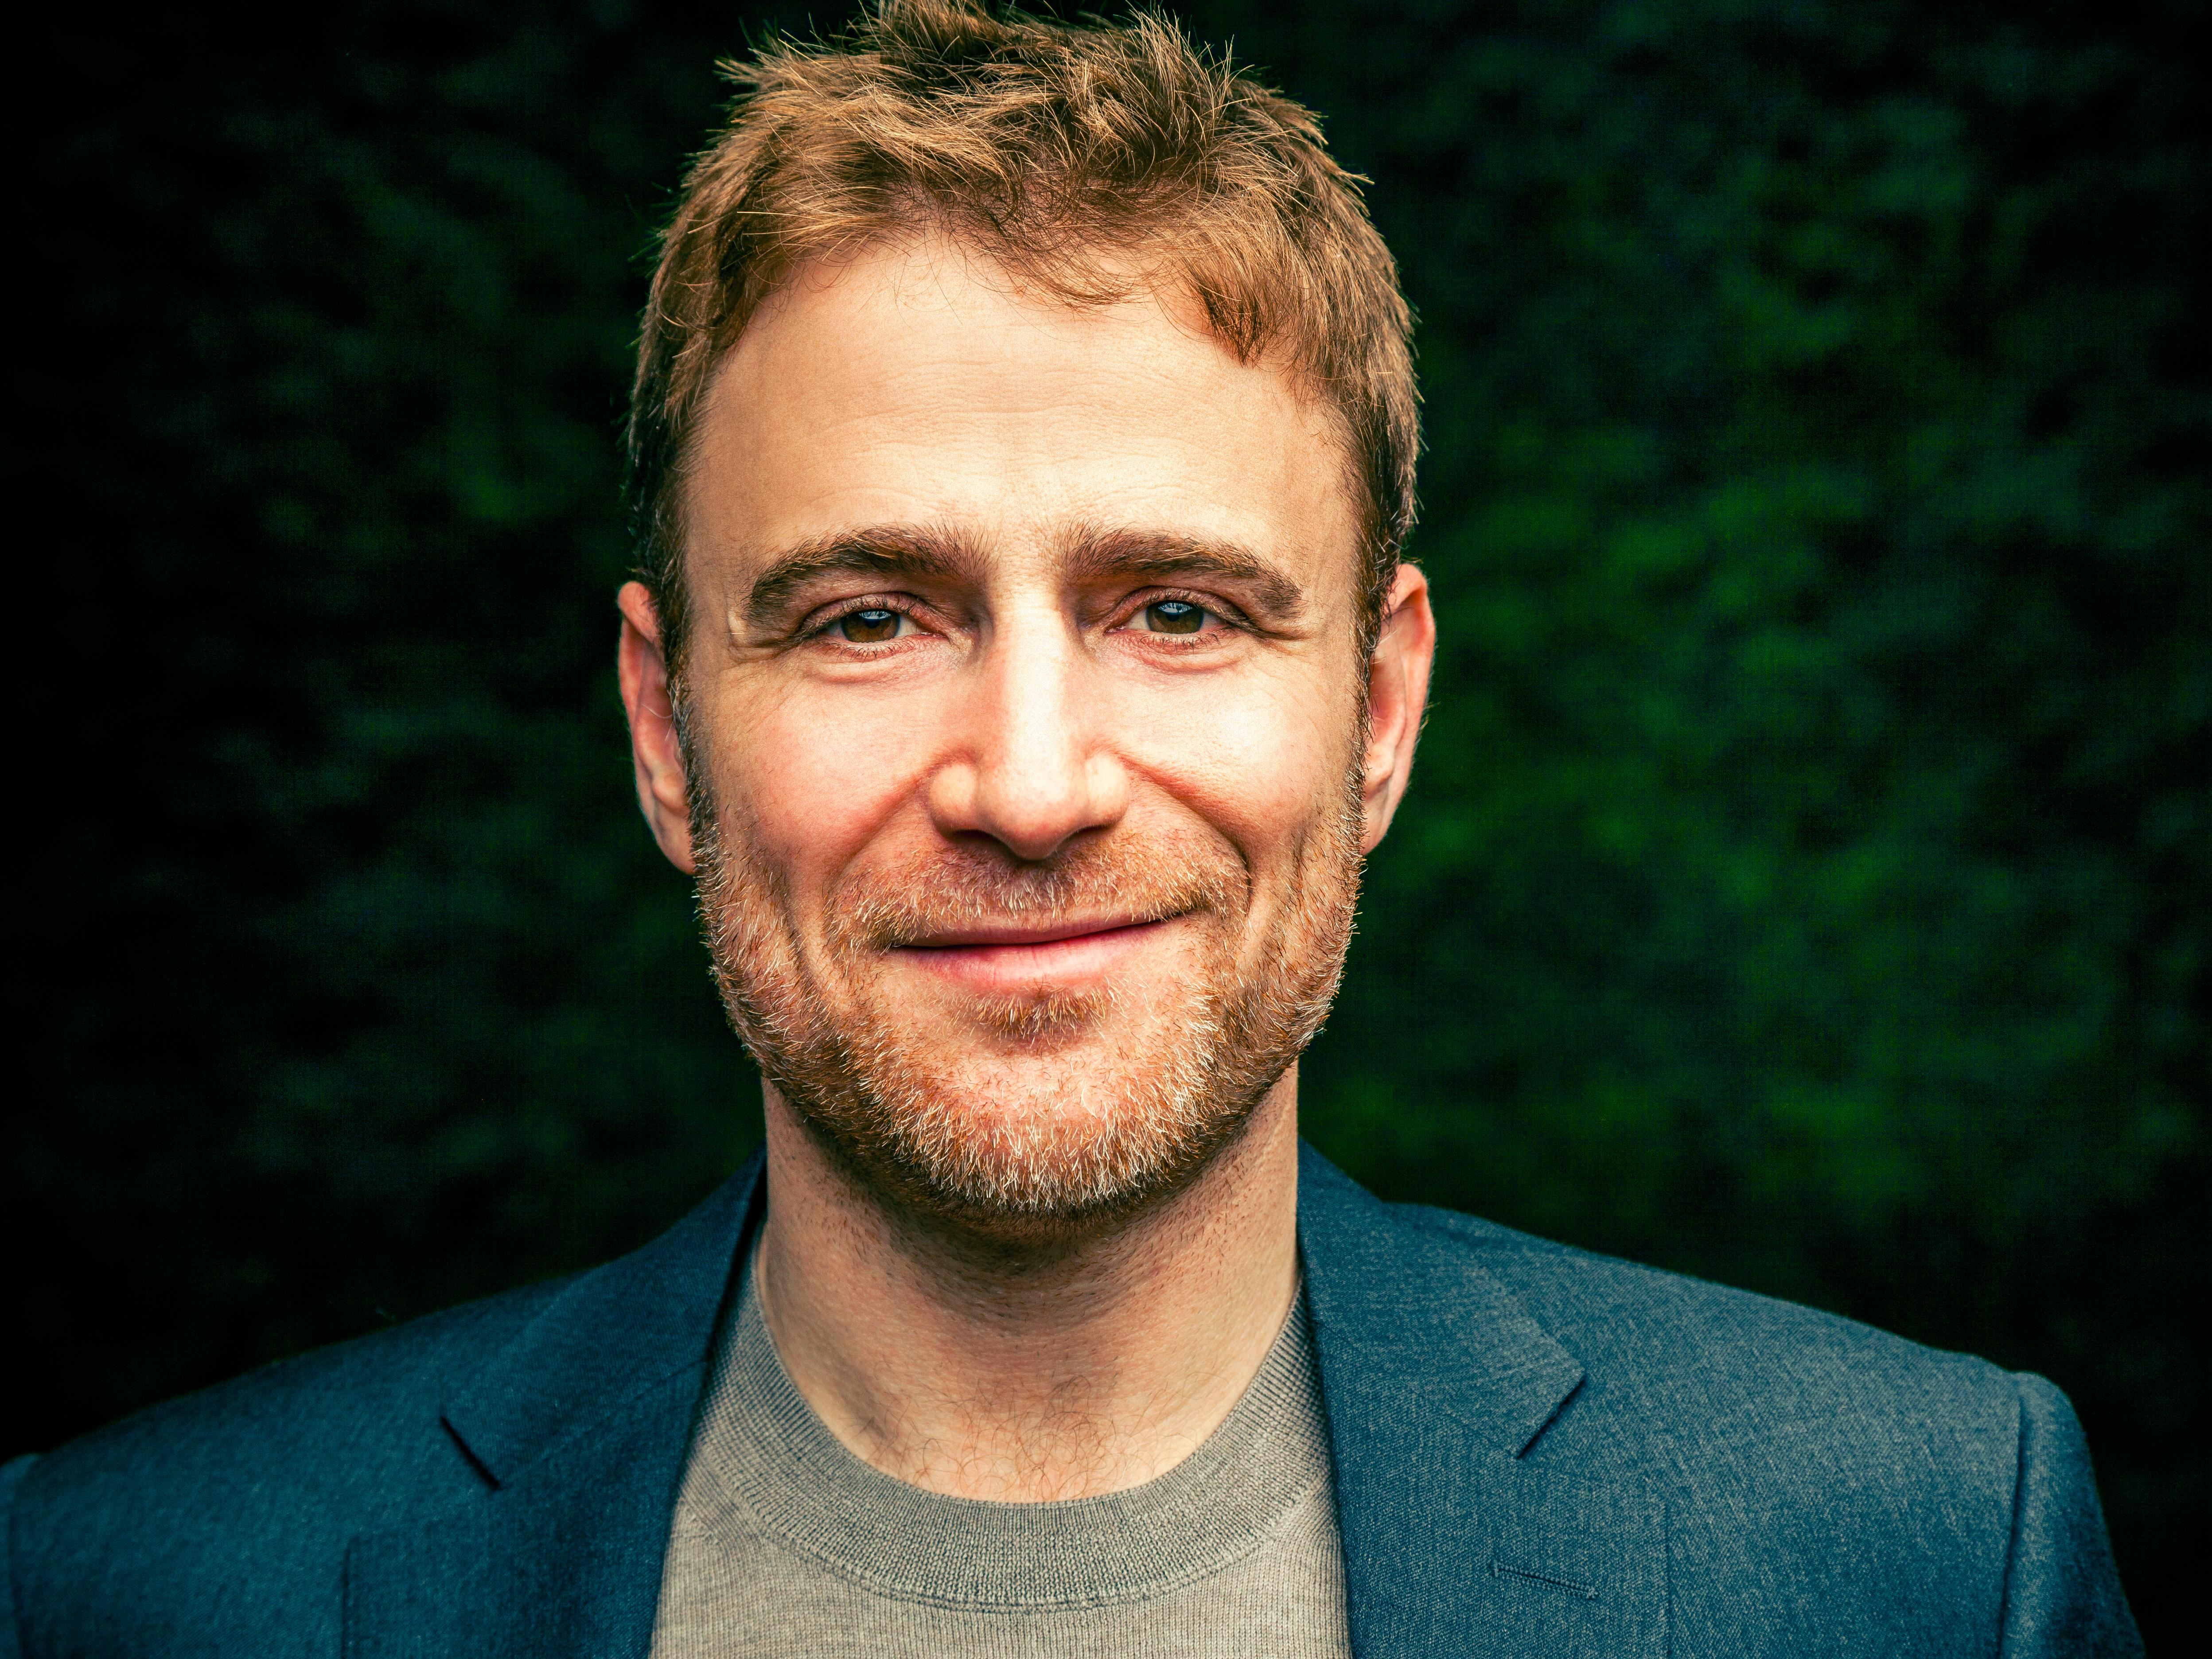 The CEO of $2.8 billion Slack says it has one big advantage over Facebook or LinkedIn